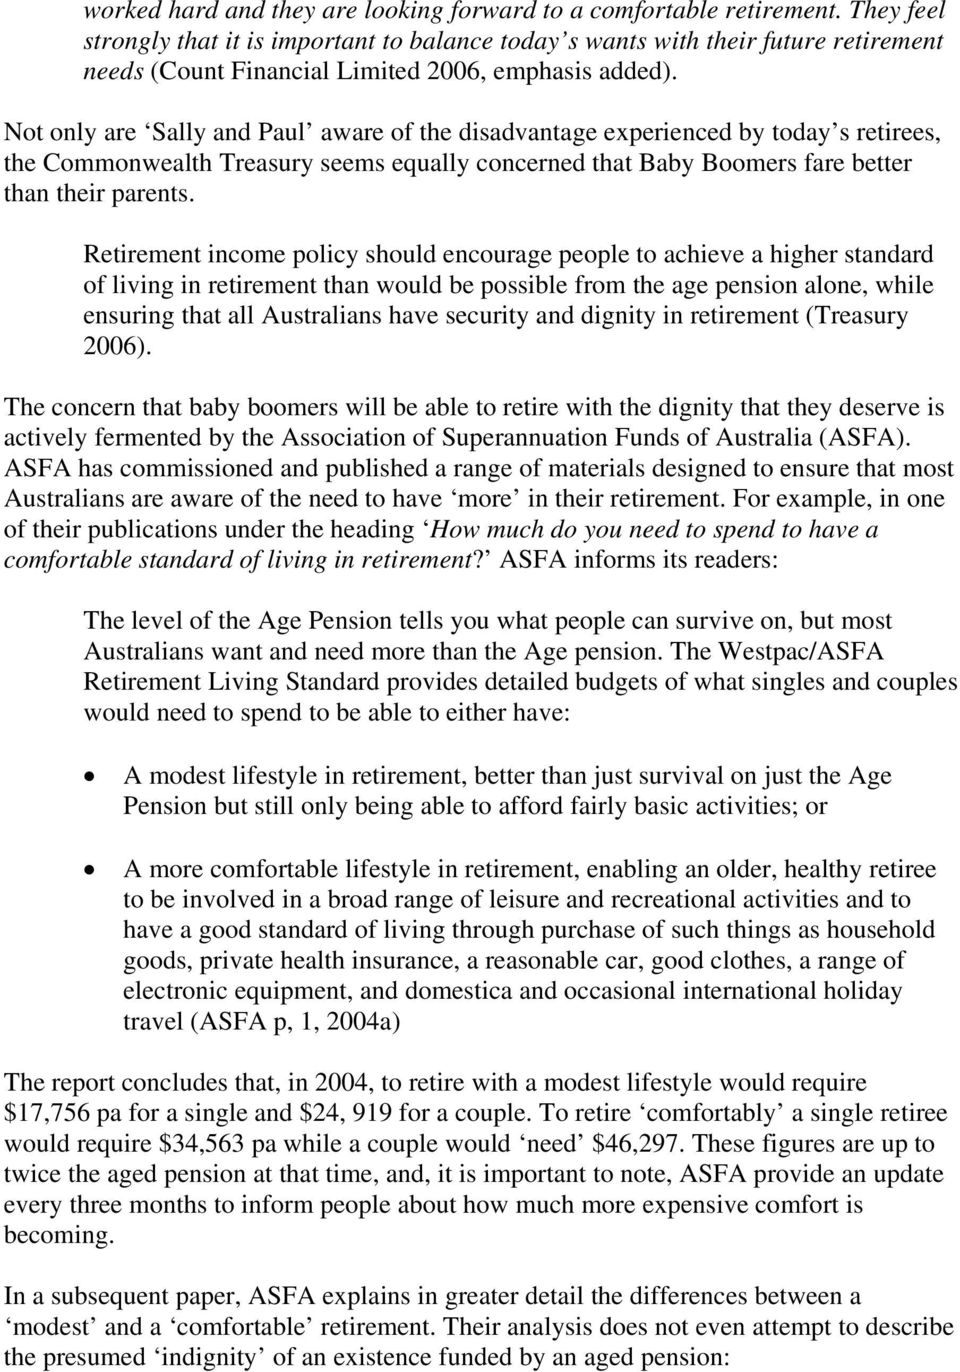 Not only are Sally and Paul aware of the disadvantage experienced by today s retirees, the Commonwealth Treasury seems equally concerned that Baby Boomers fare better than their parents.